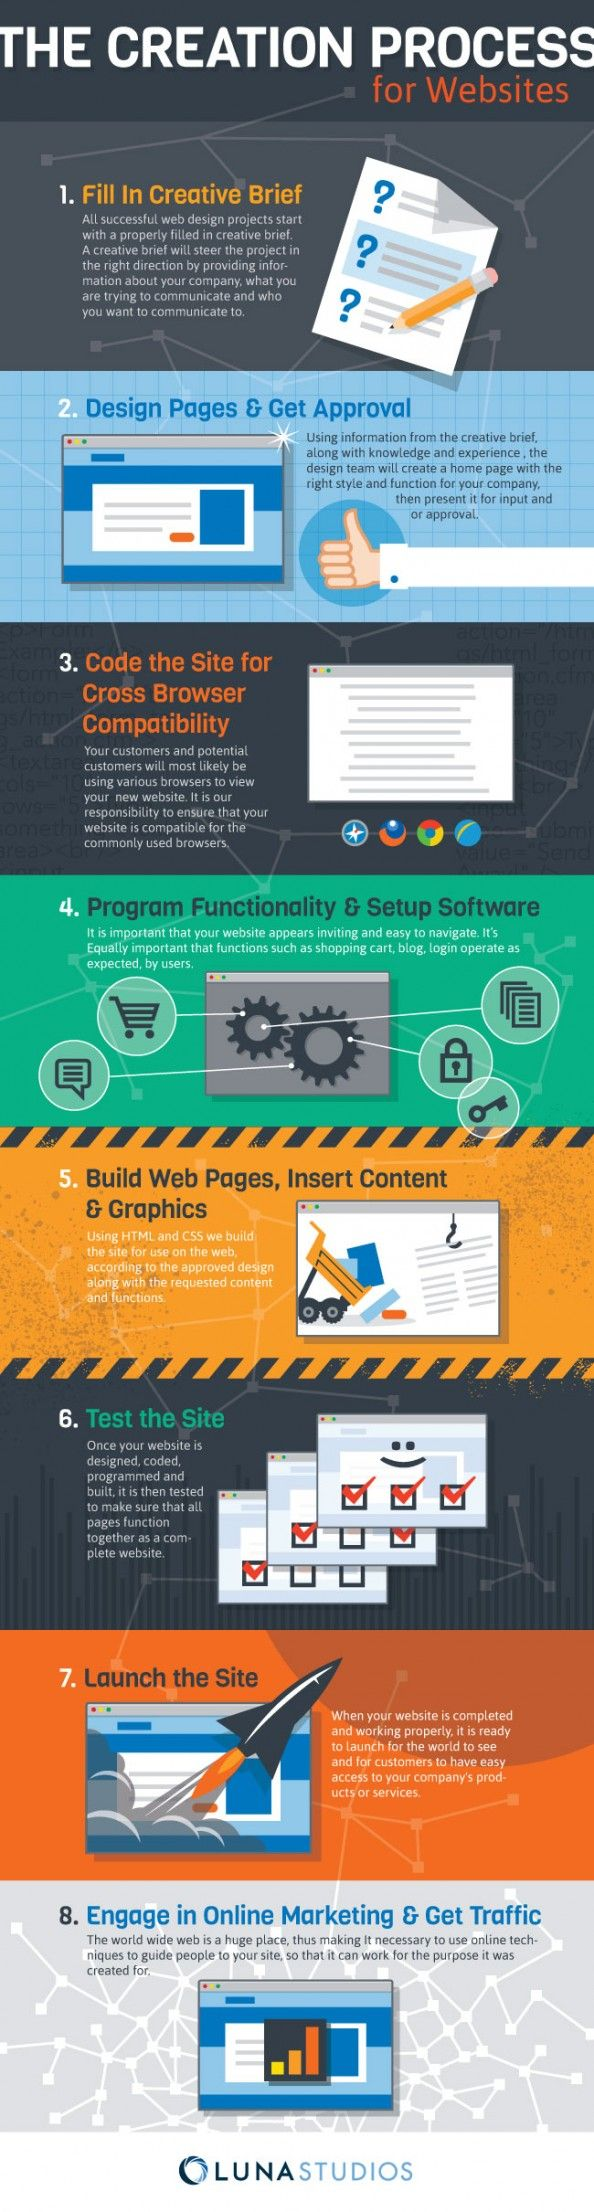 Web Design Project Ideas projects Web Design Process The Creation Process For Websites